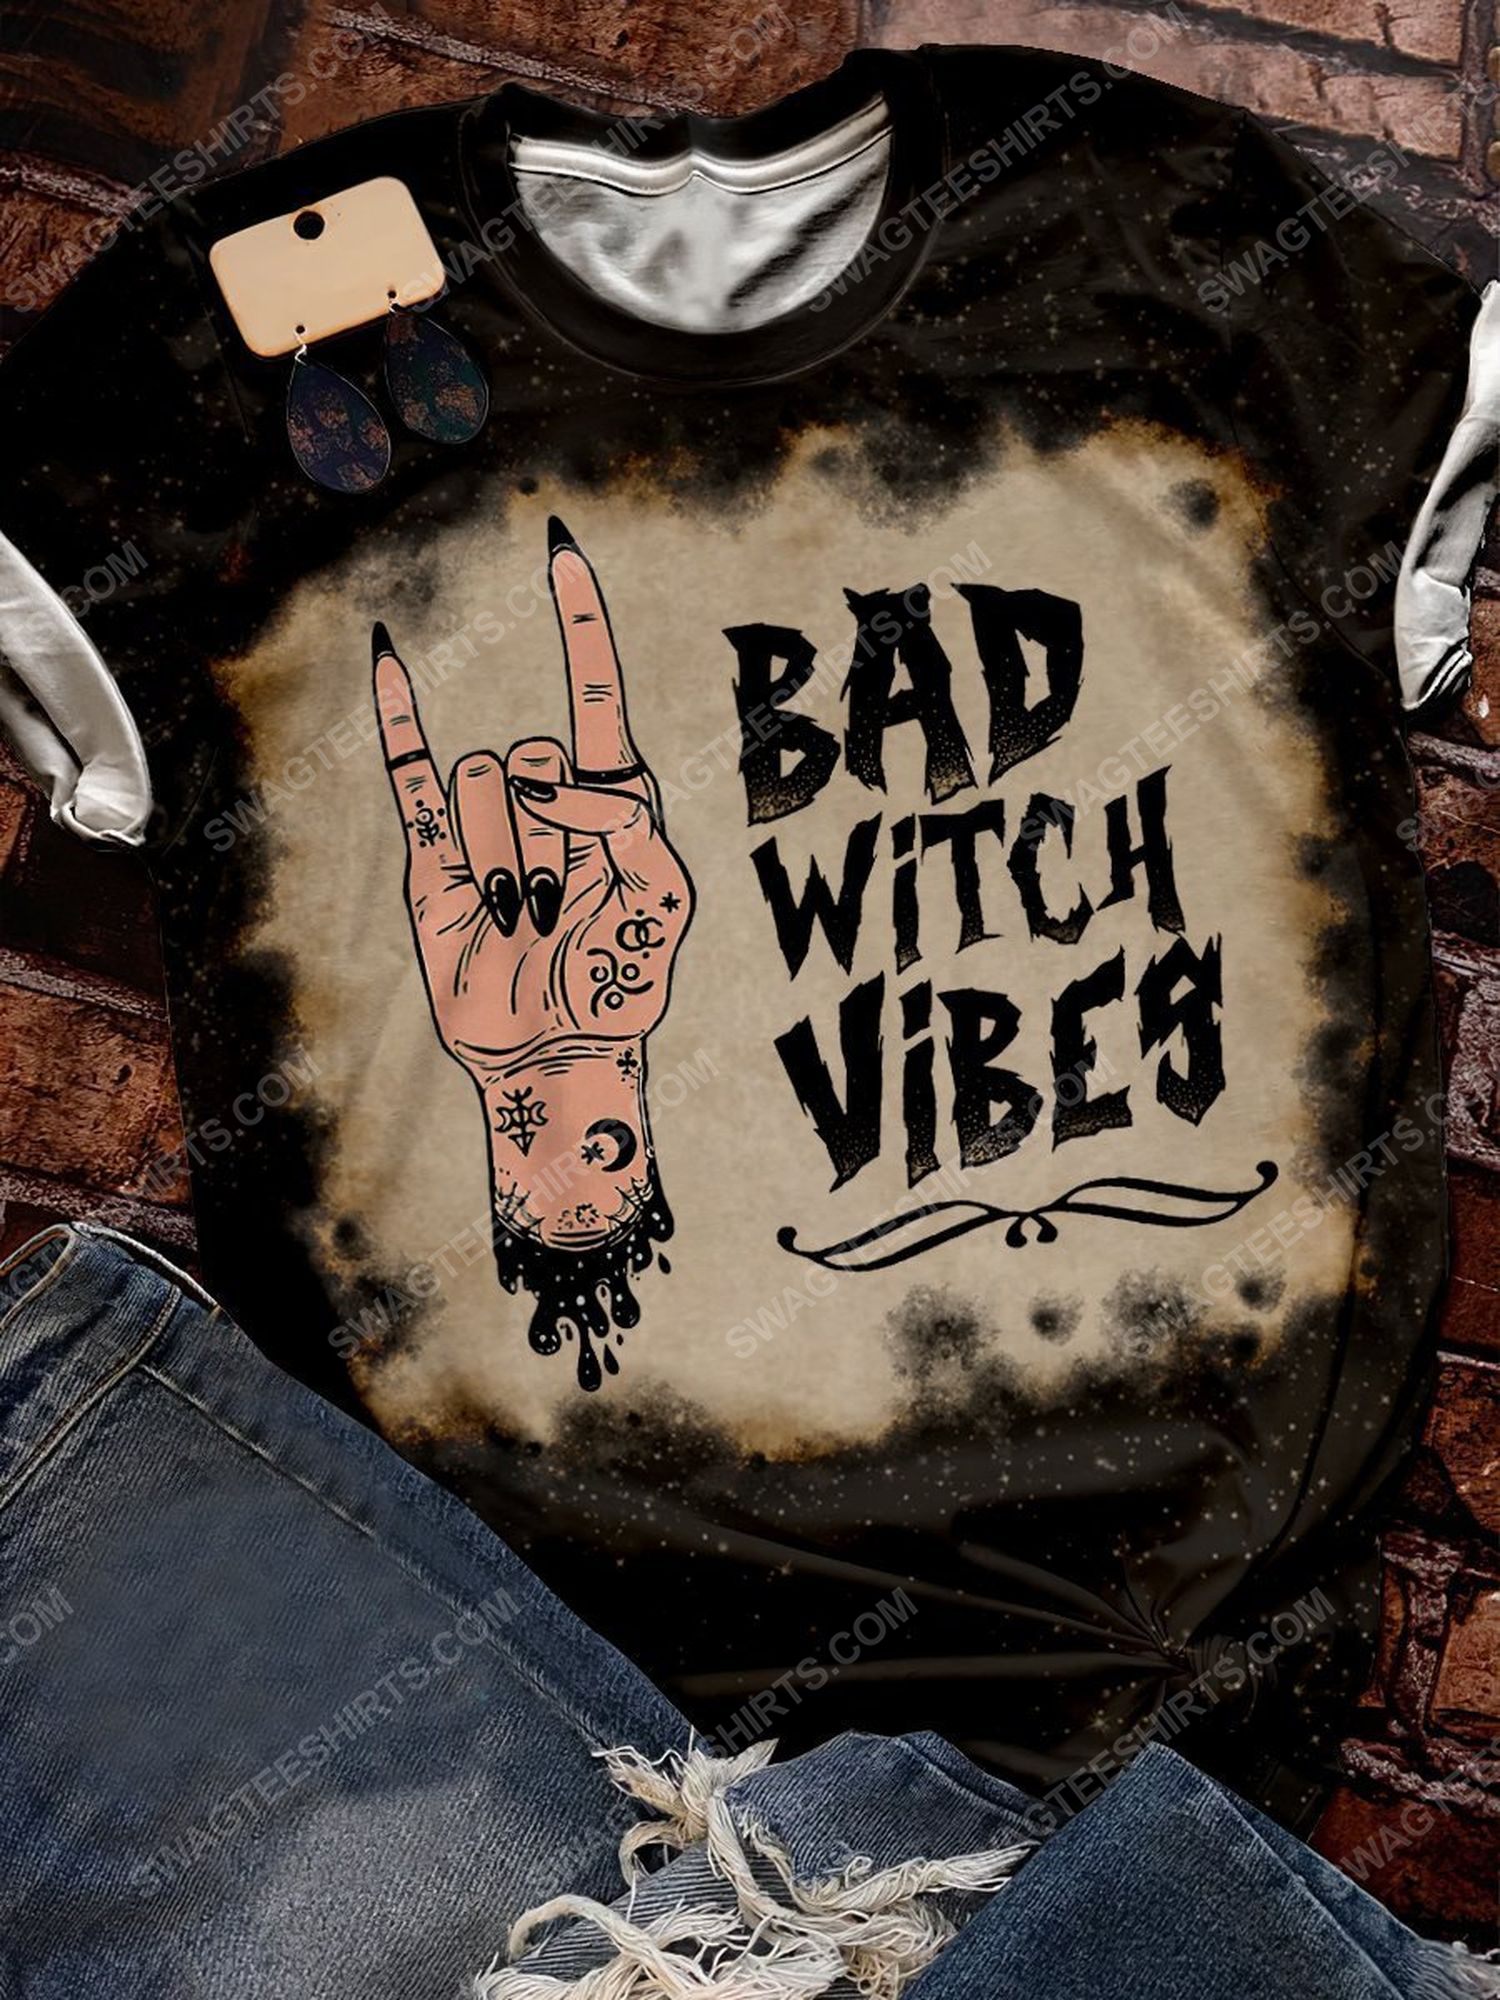 Halloween night bad witch vibes bleached shirt 1 - Copy (3)